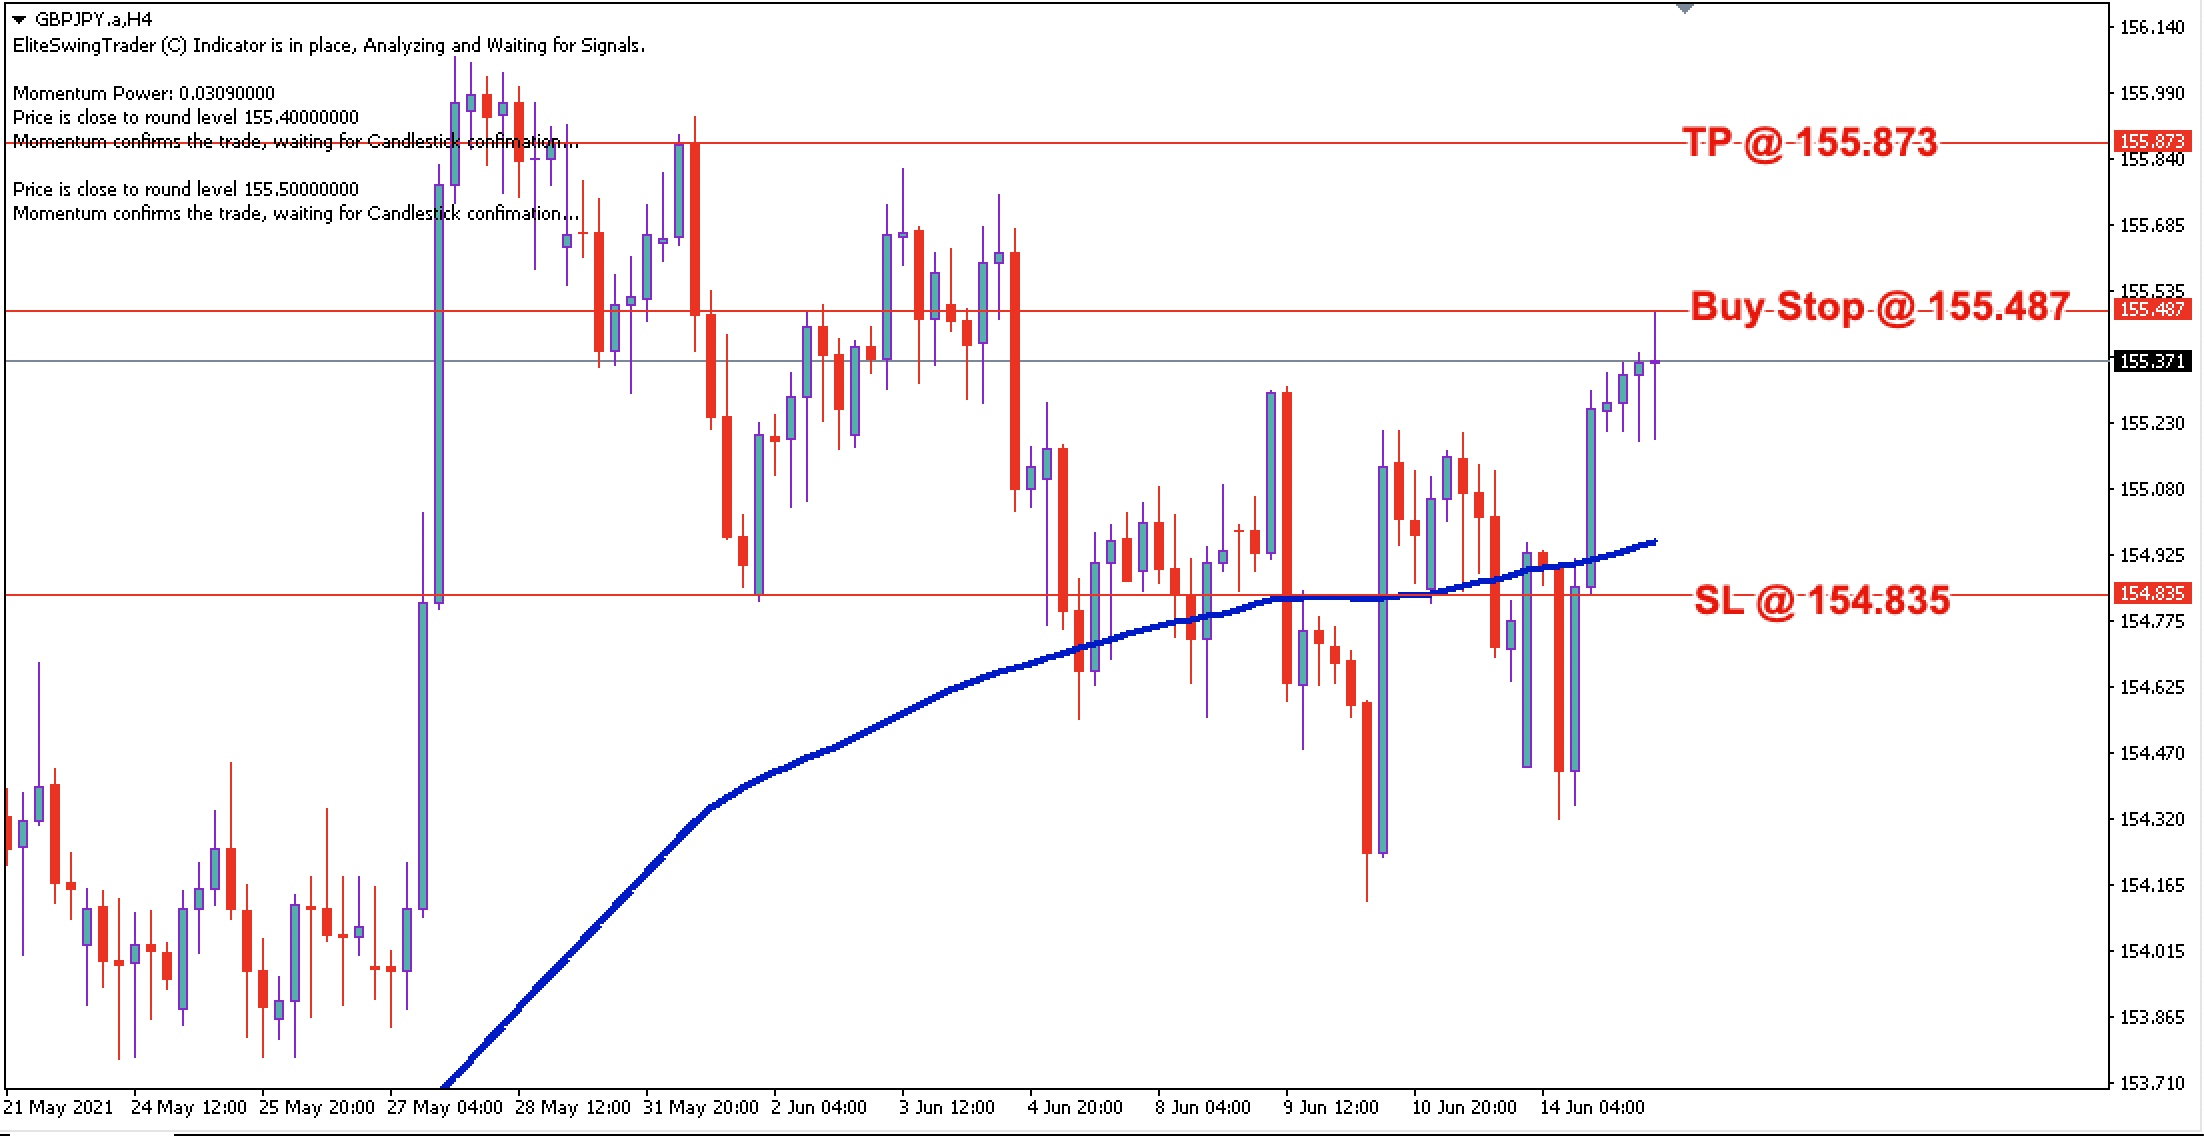 GBP/JPY Daily Price Forecast – 15th June 2021